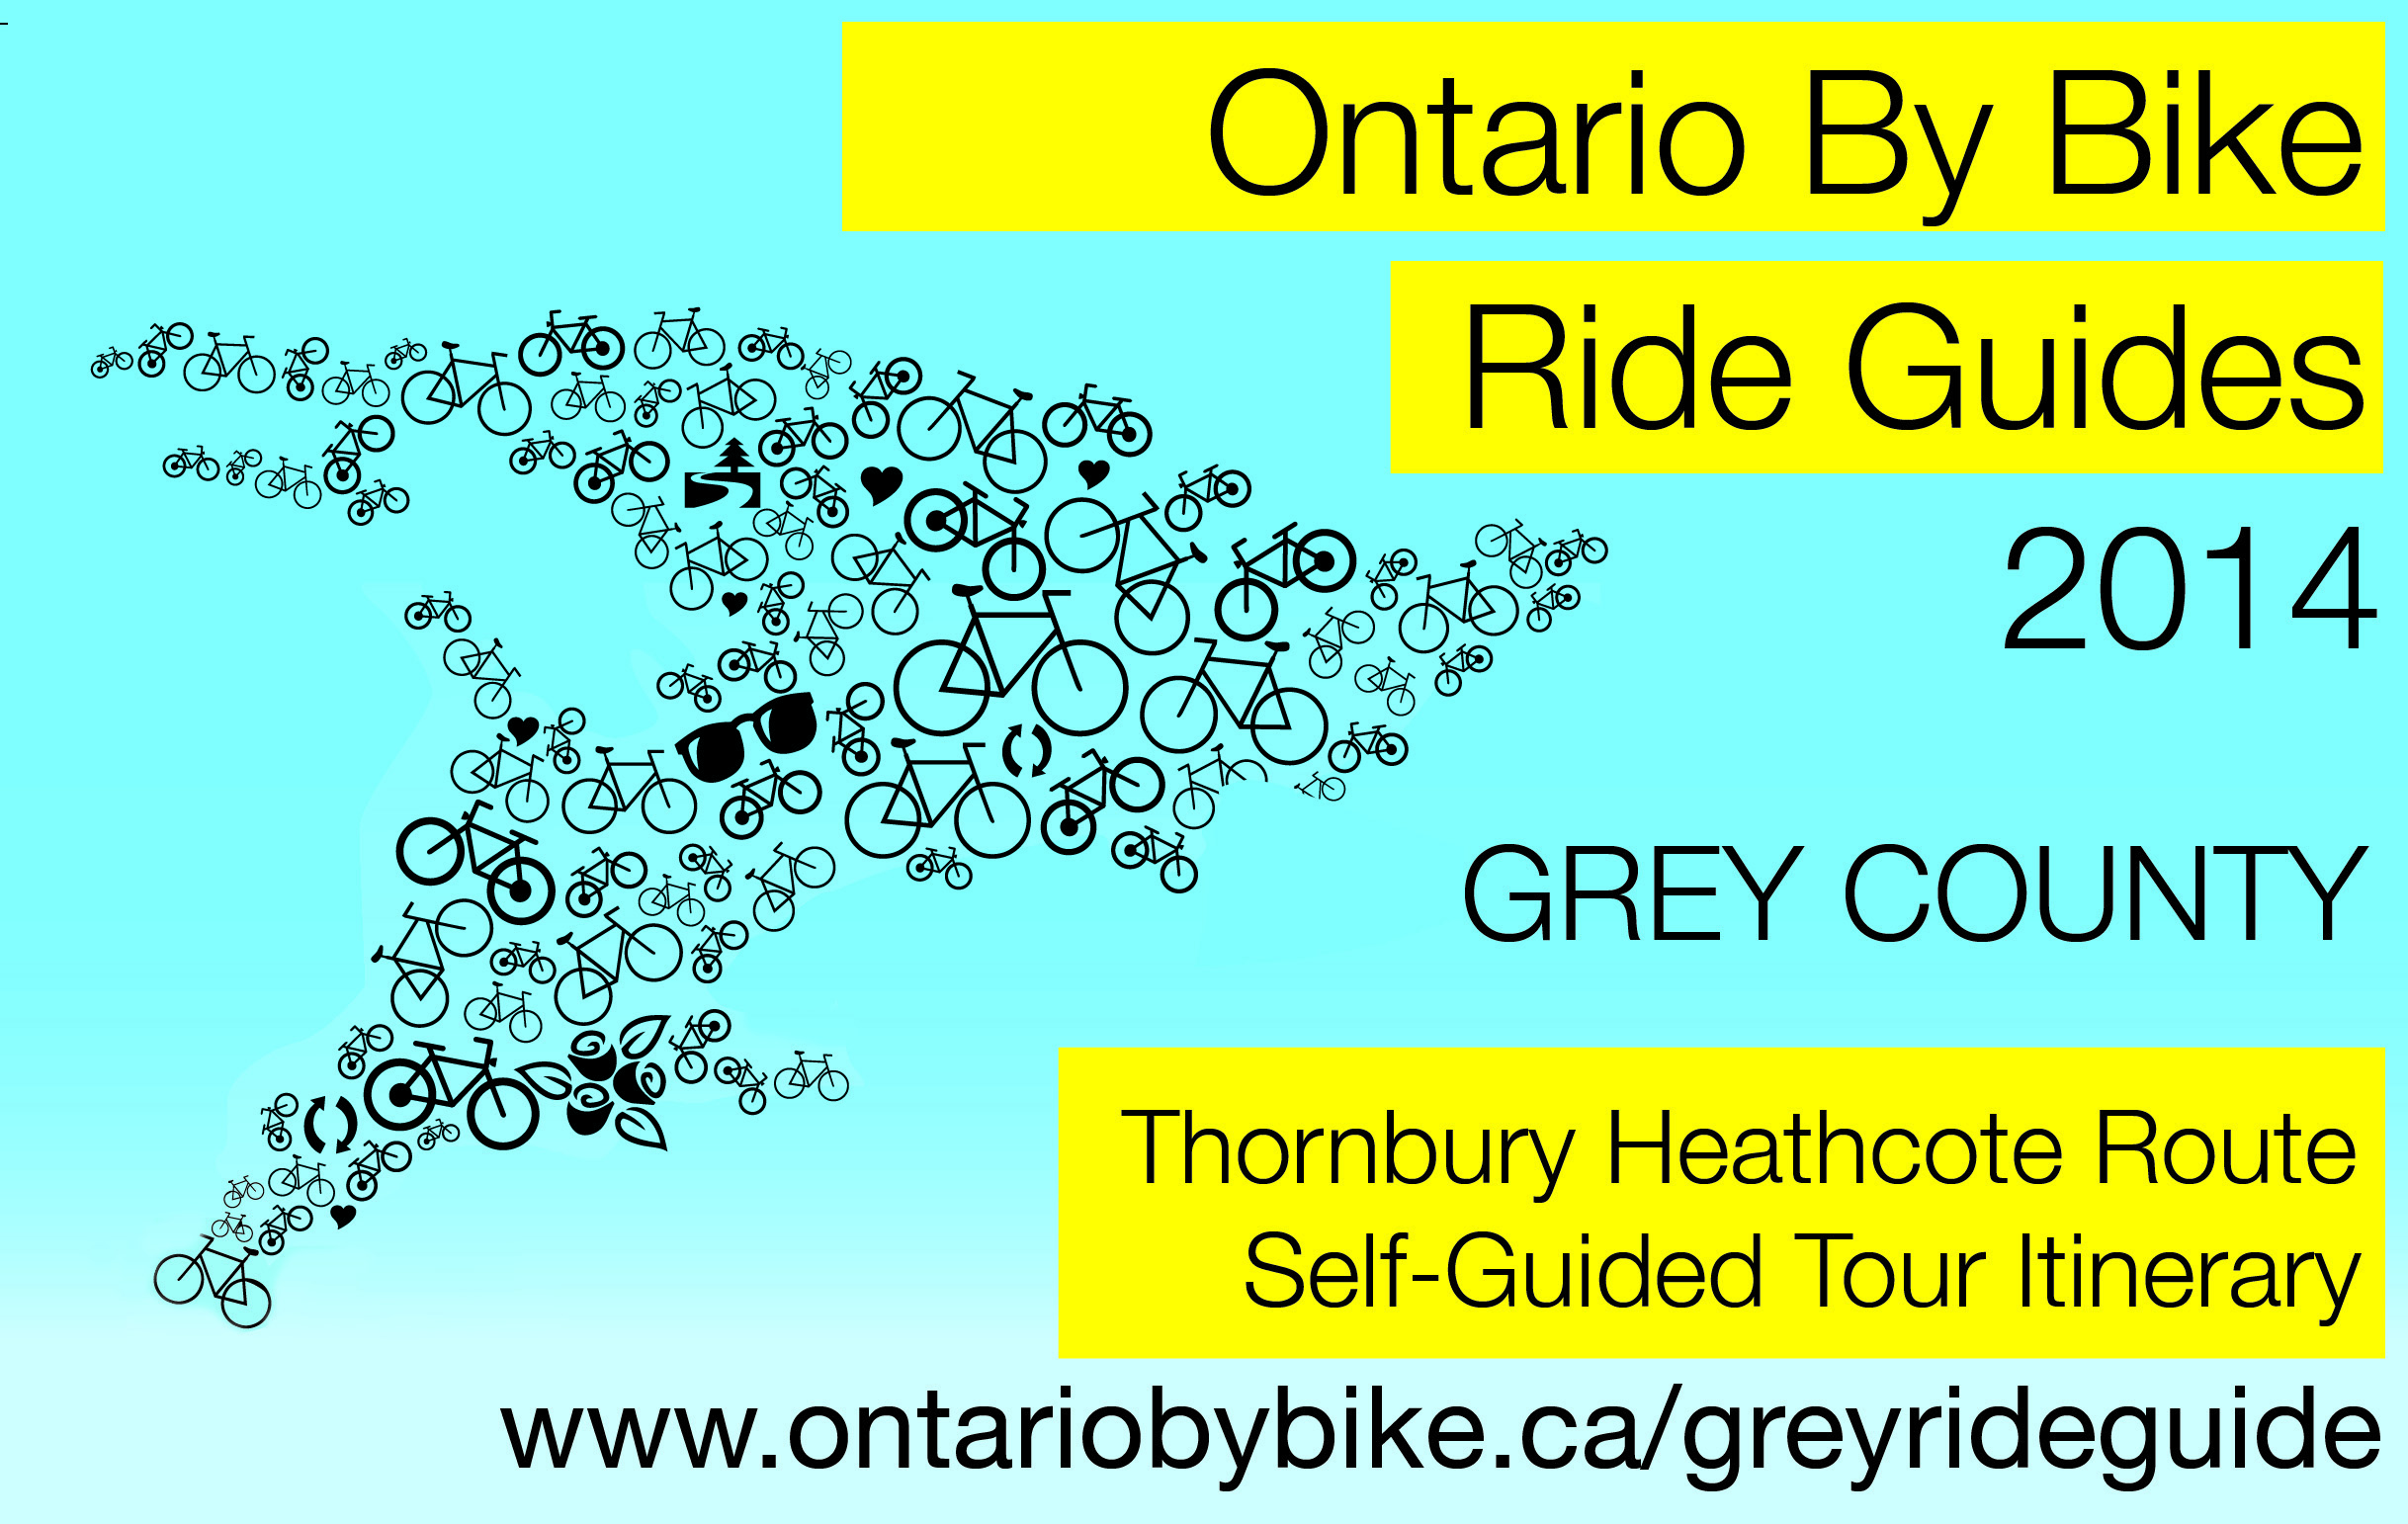 Ride Guide 2014 BlueGREY COUNTY - Post Launch